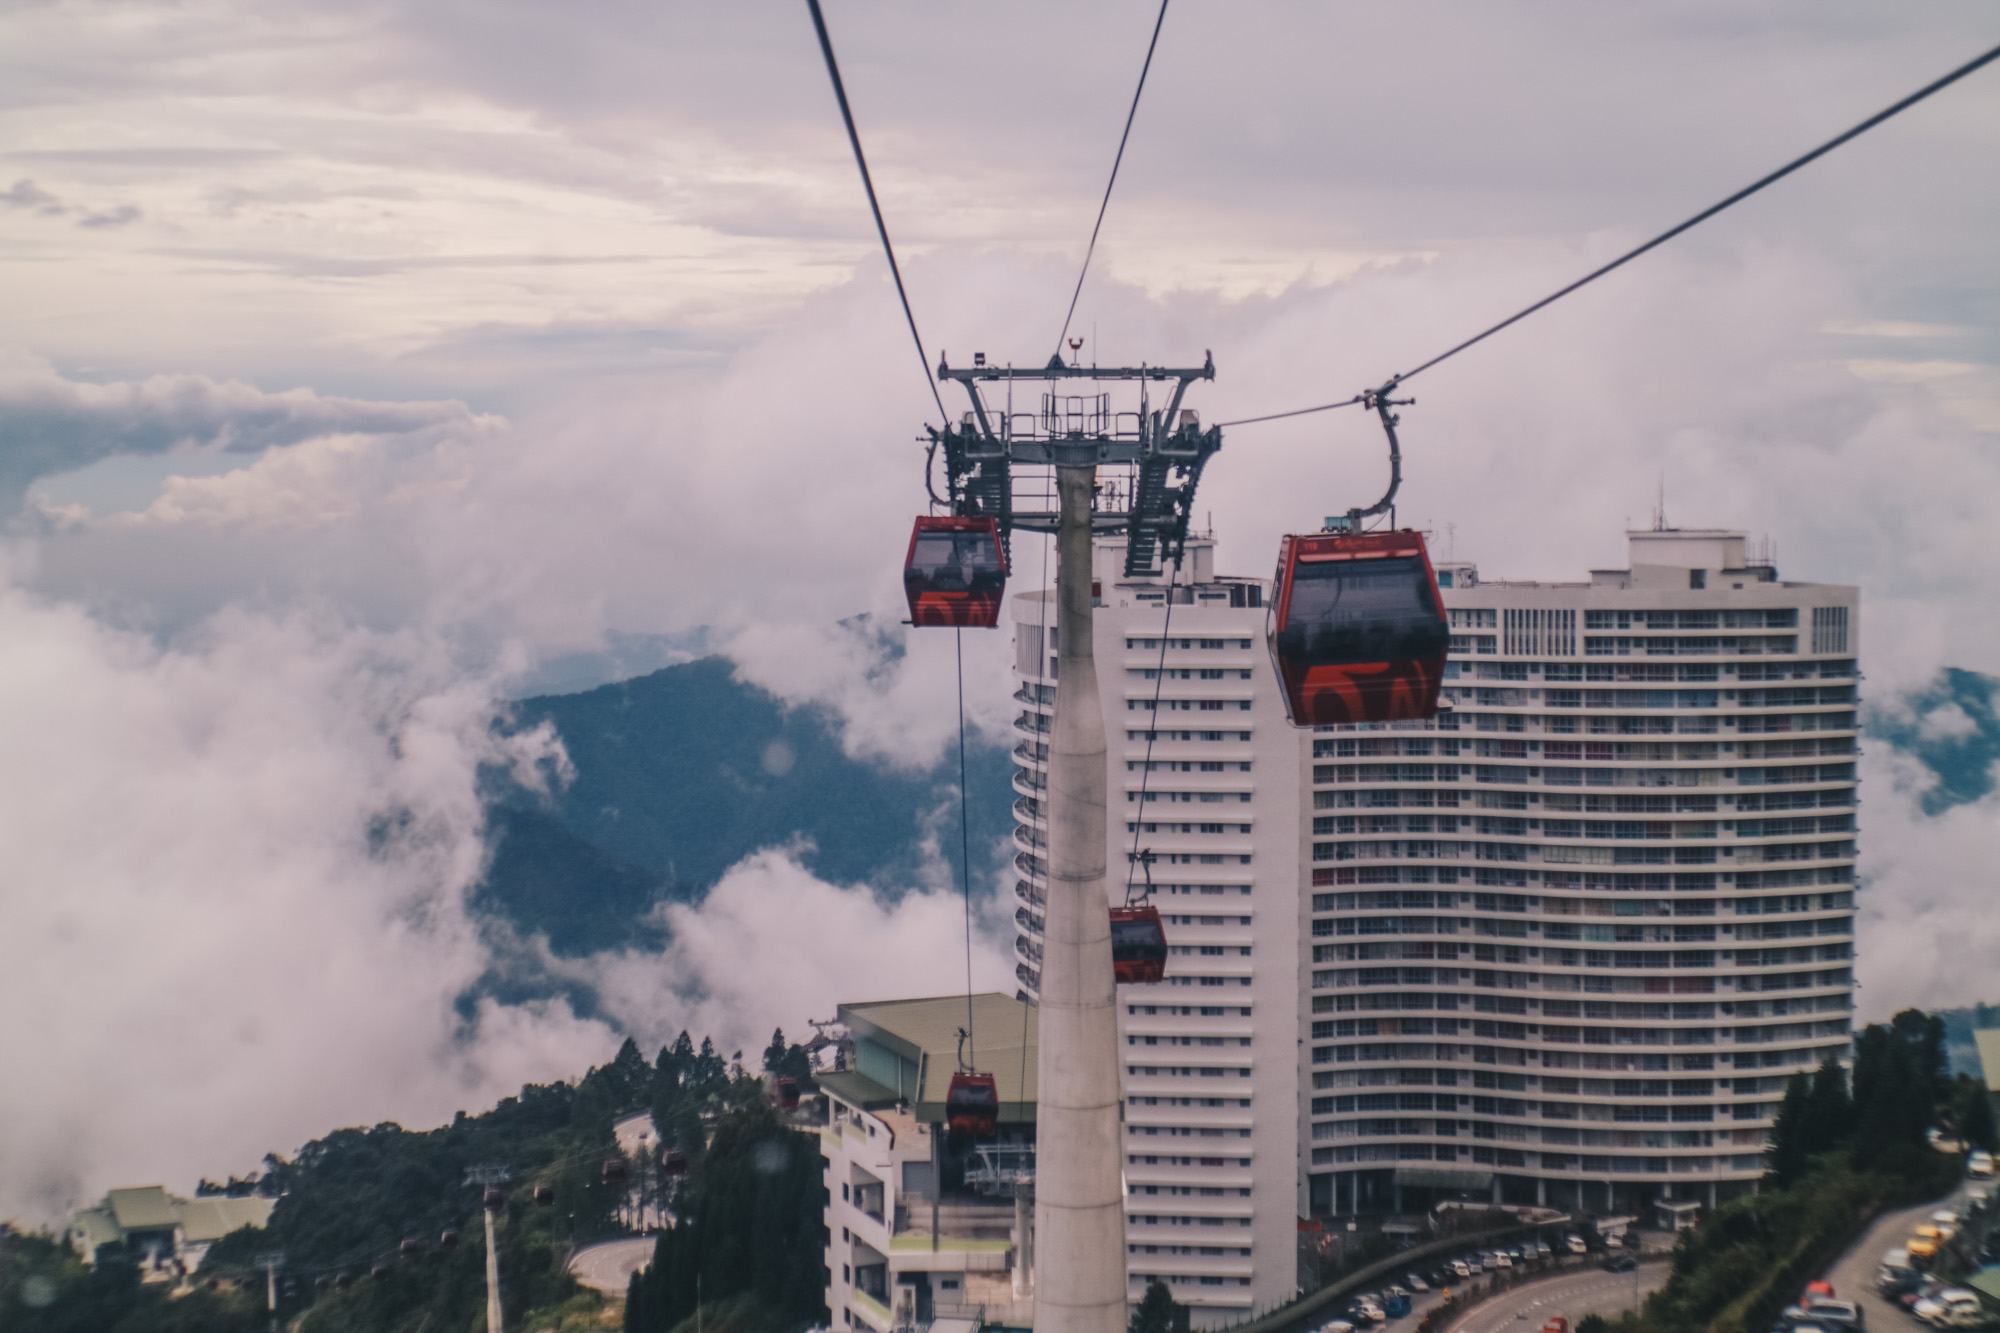 resortsworldgenting-skycablecar-darrenbloggie